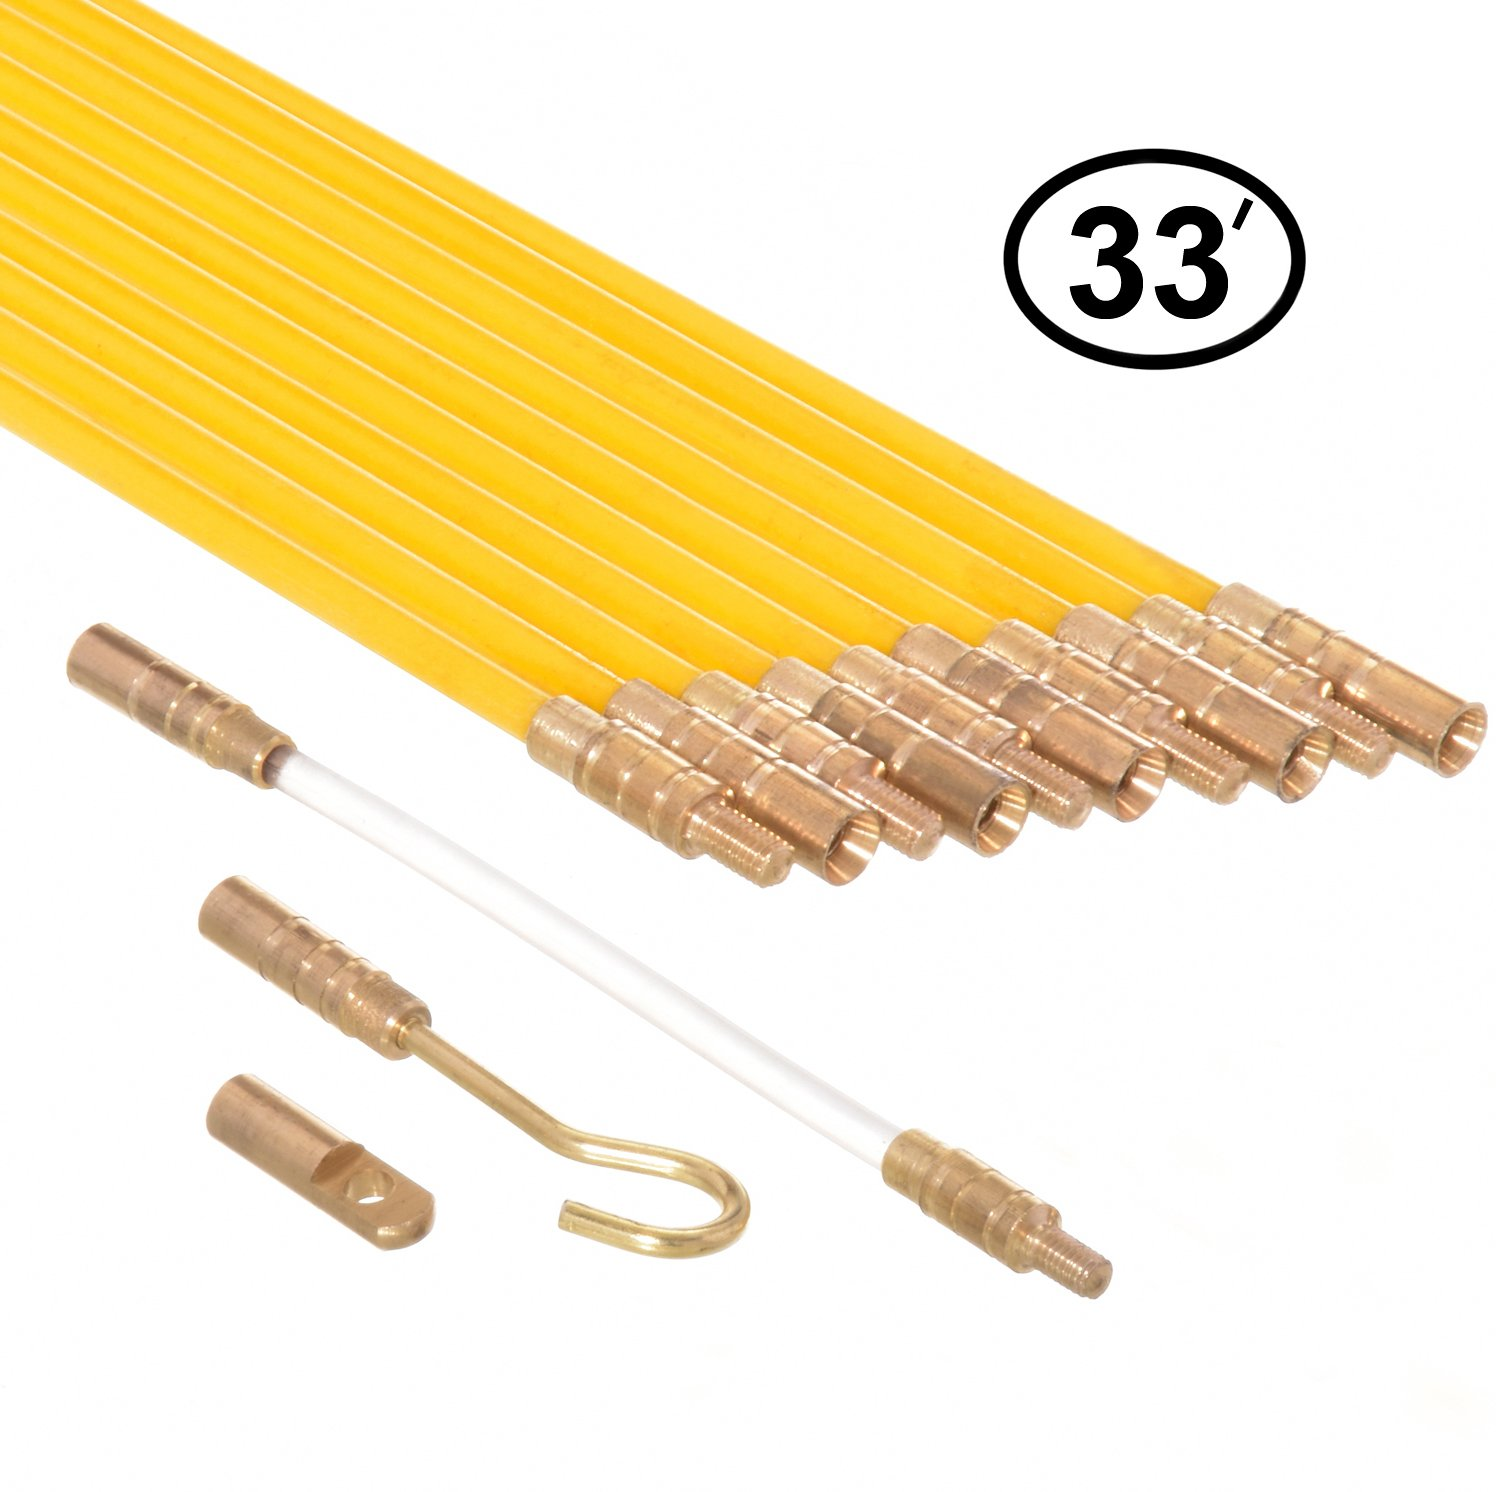 Remarkable Ram Pro 33 Feet Fiberglass Fish Tape Cable Rods Electrical Wire Wiring 101 Capemaxxcnl